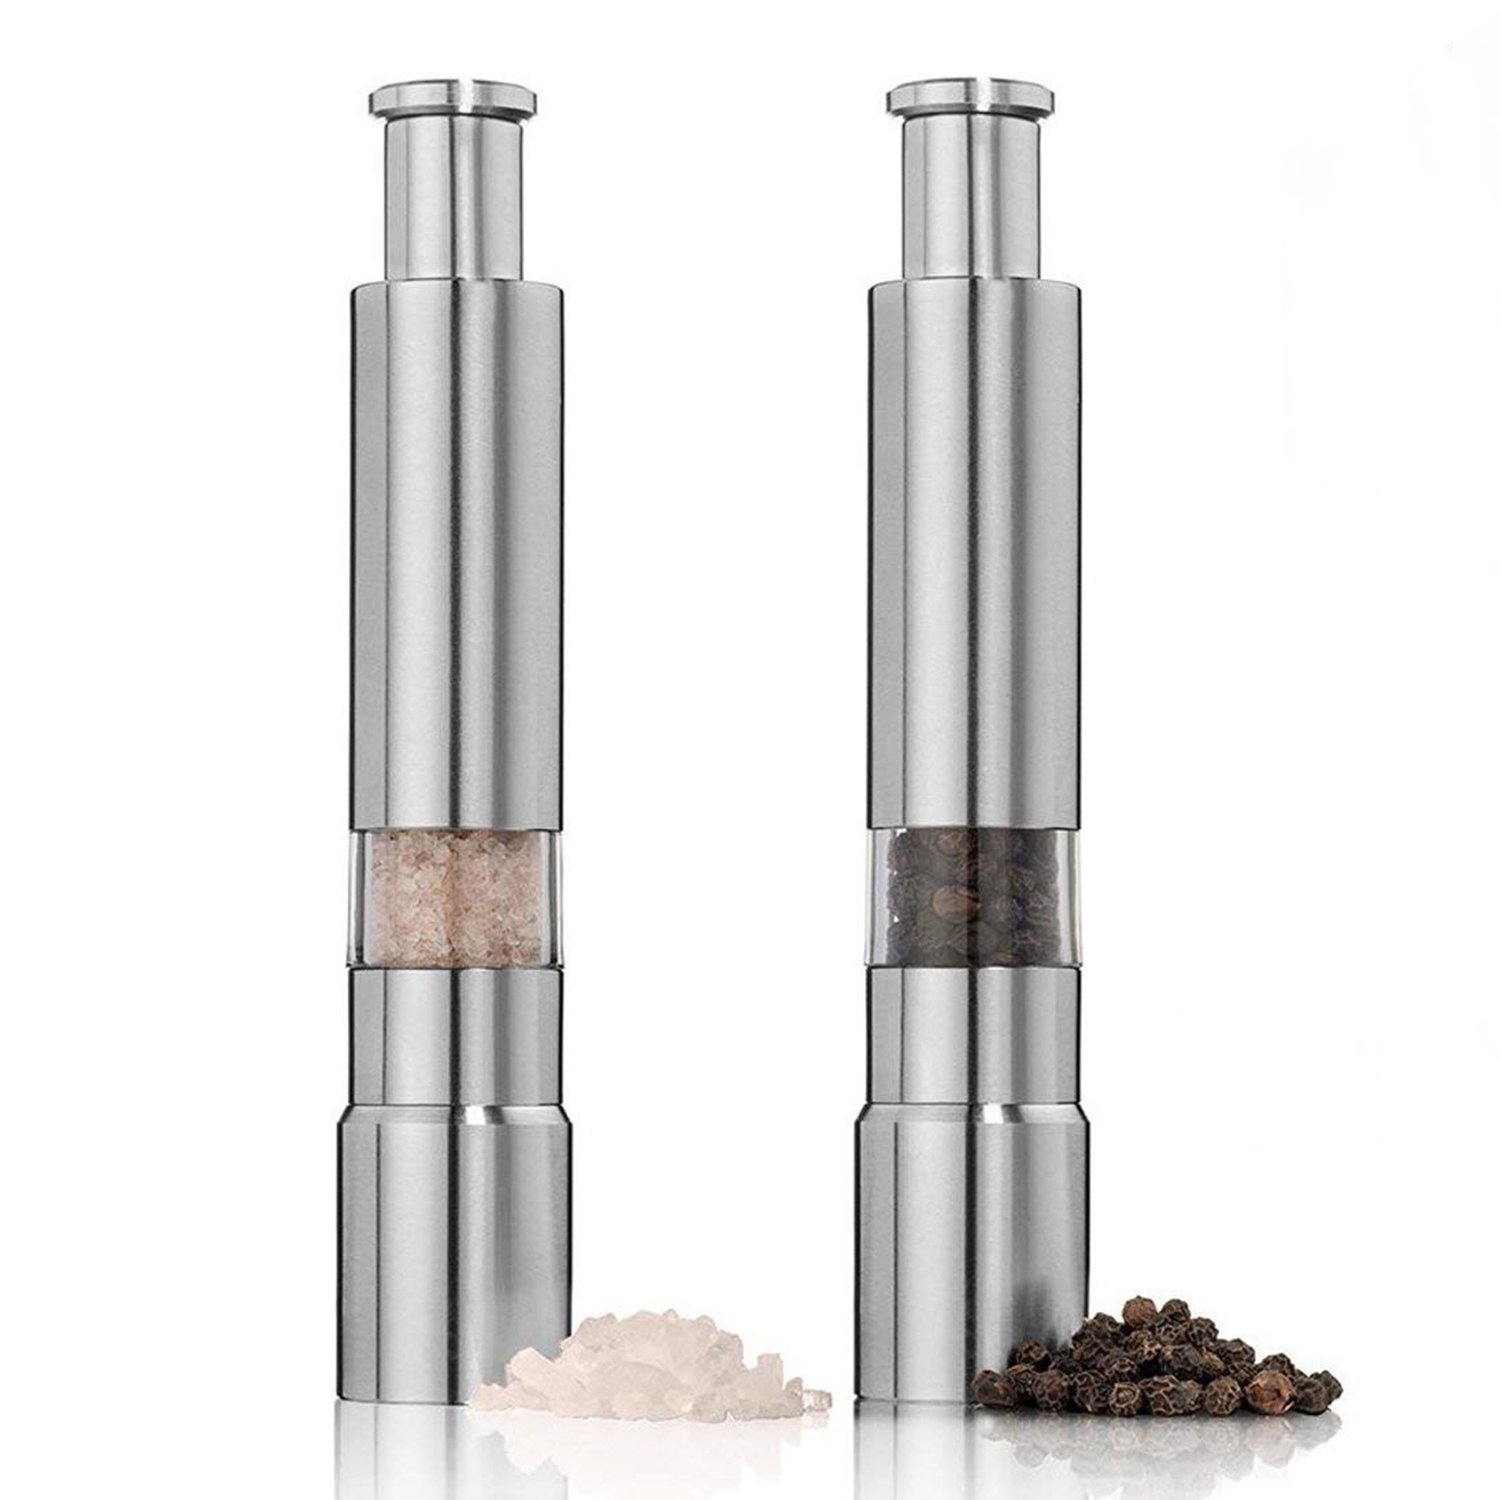 Salt and Pepper Grinder Set Gourmet Original Pump and Stainless Steel and Acrylic One Hand Operation Grind Herb or Spice Cooking Gadgets Grinder Set